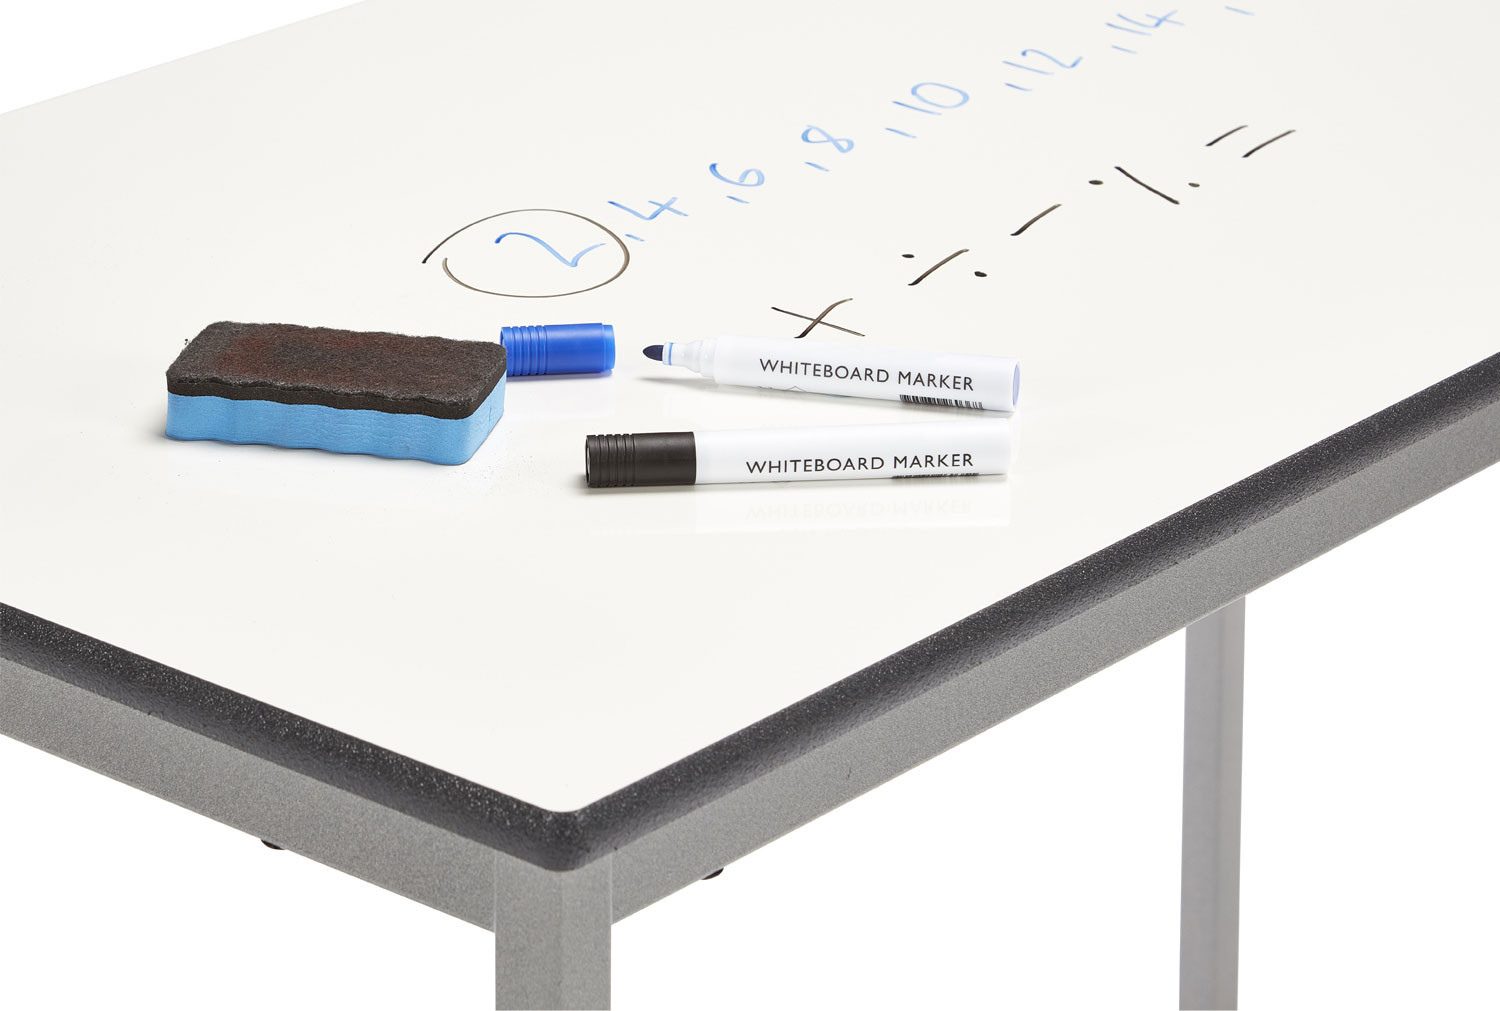 Fully Welded Rectangular Table With Whiteboard Top 3-4 Years